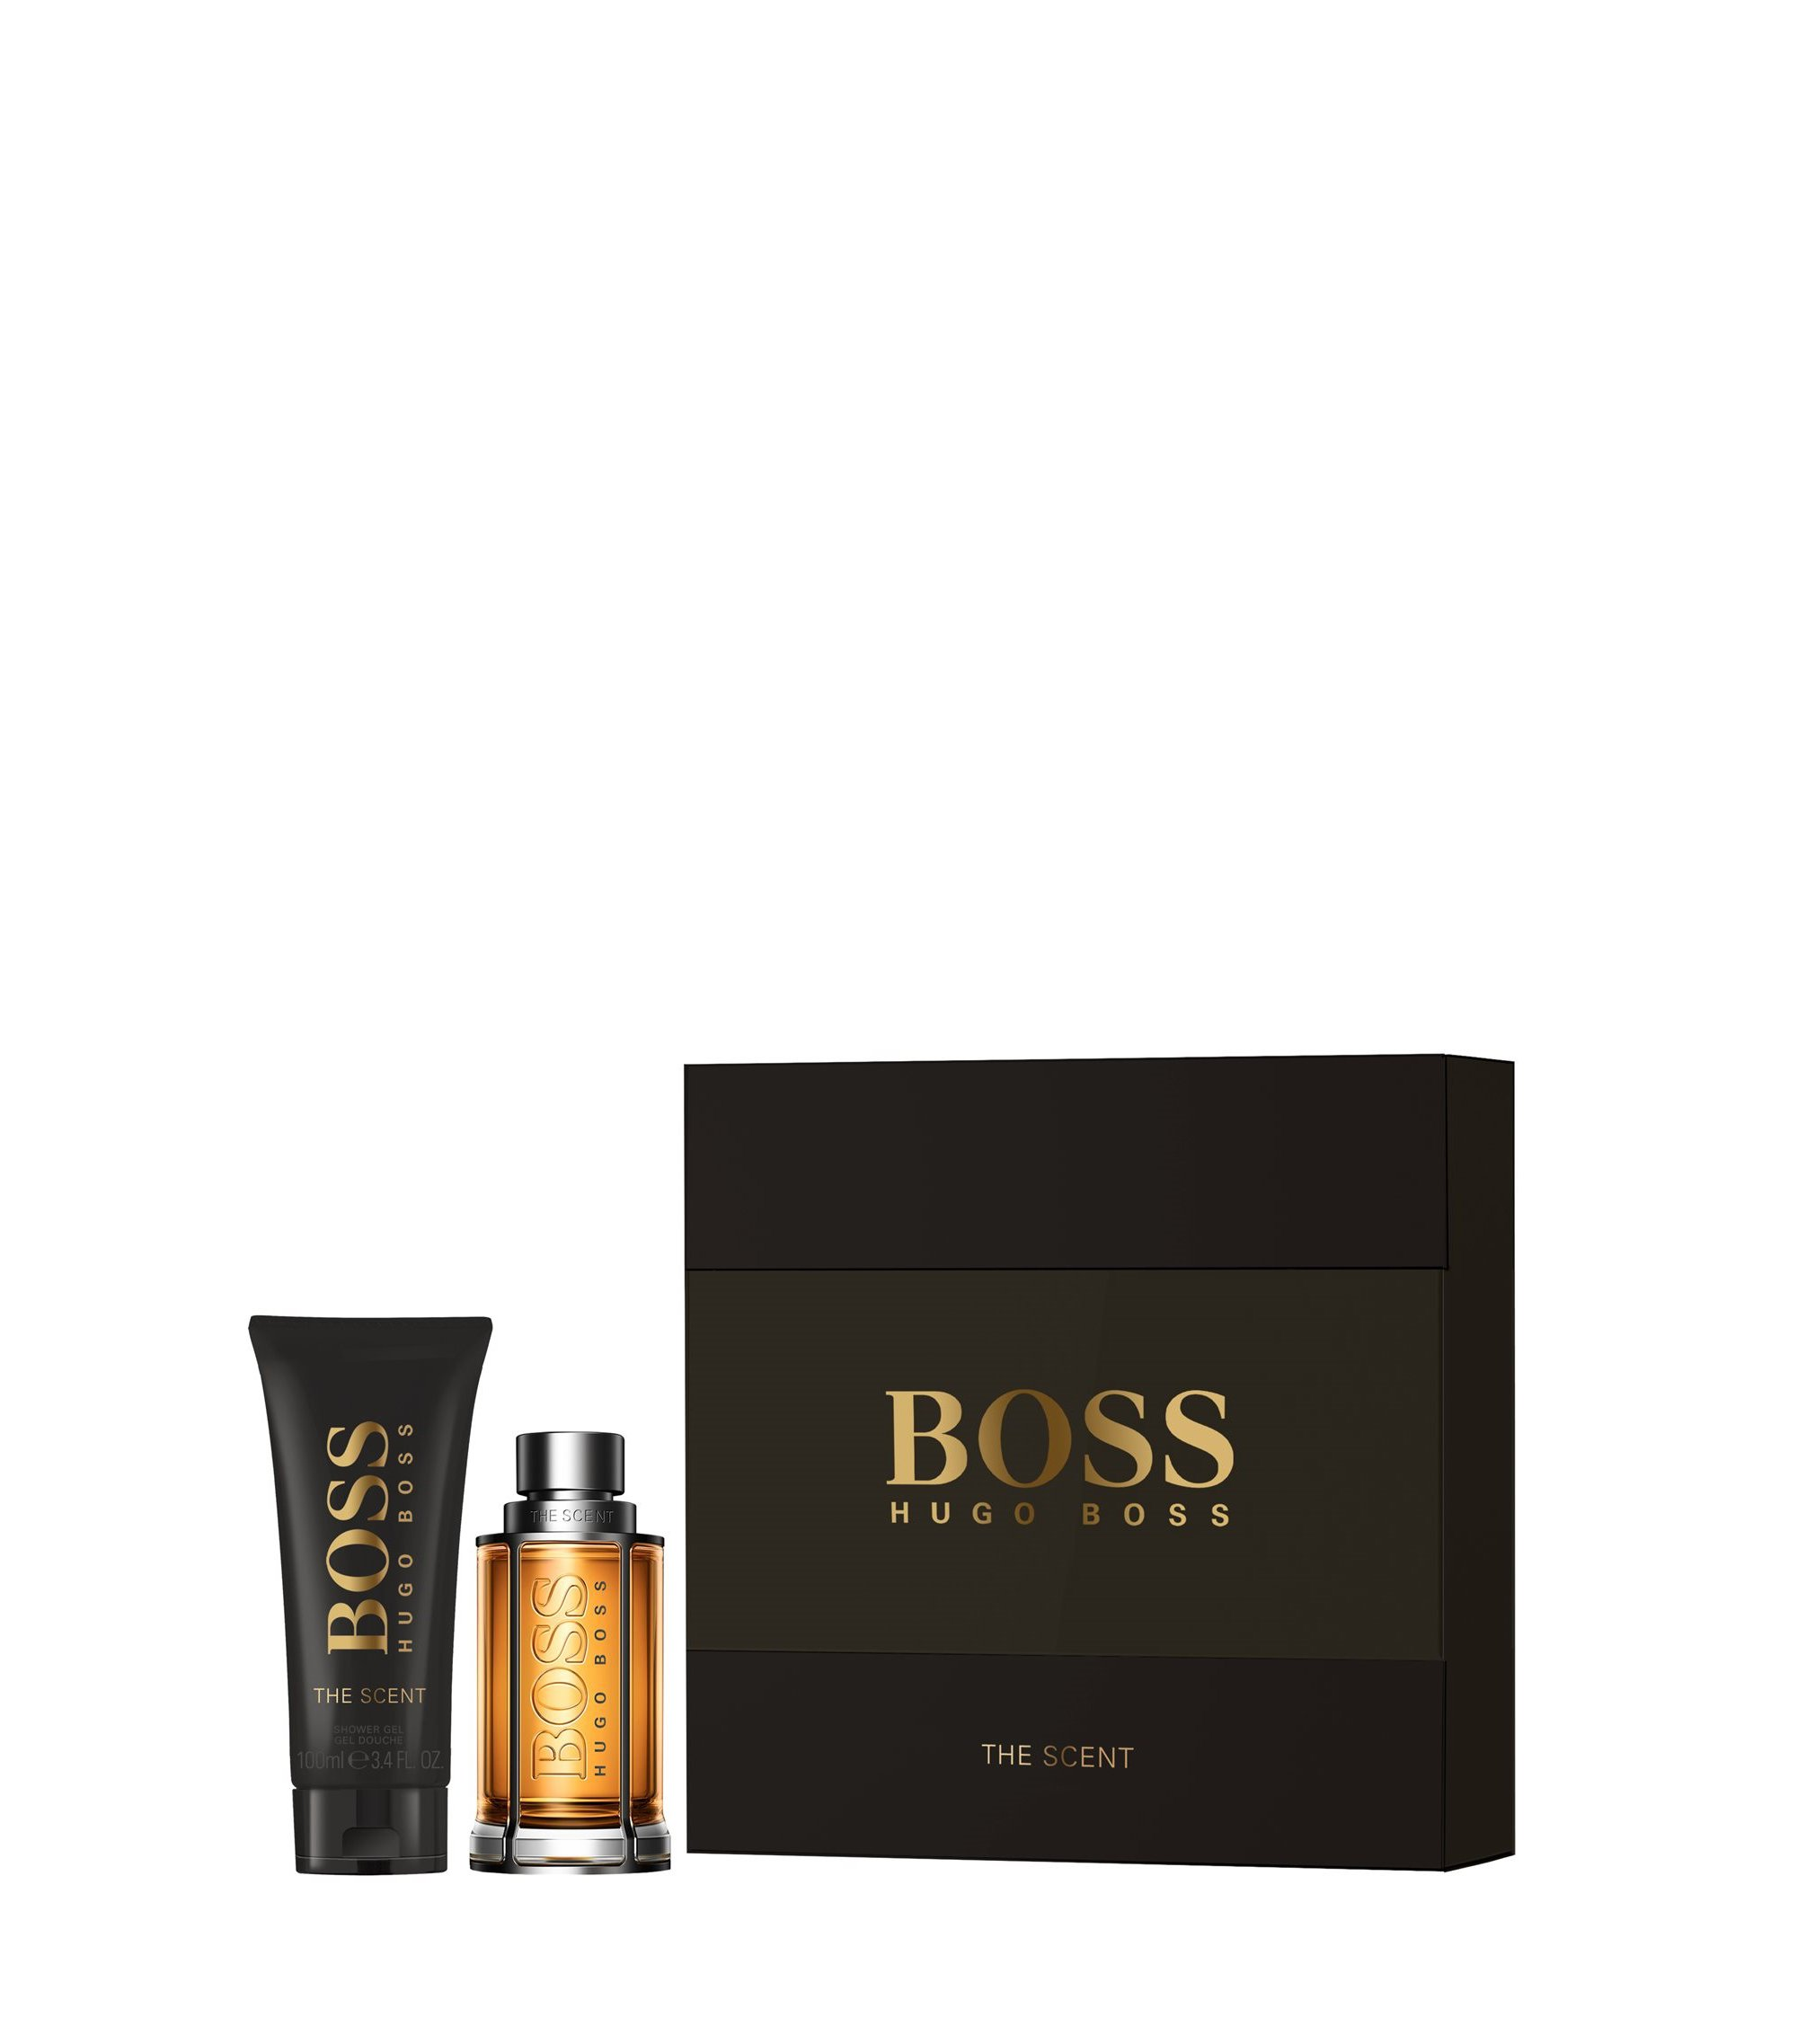 Coffret cadeau parfum BOSS The Scent, Assorted-Pre-Pack